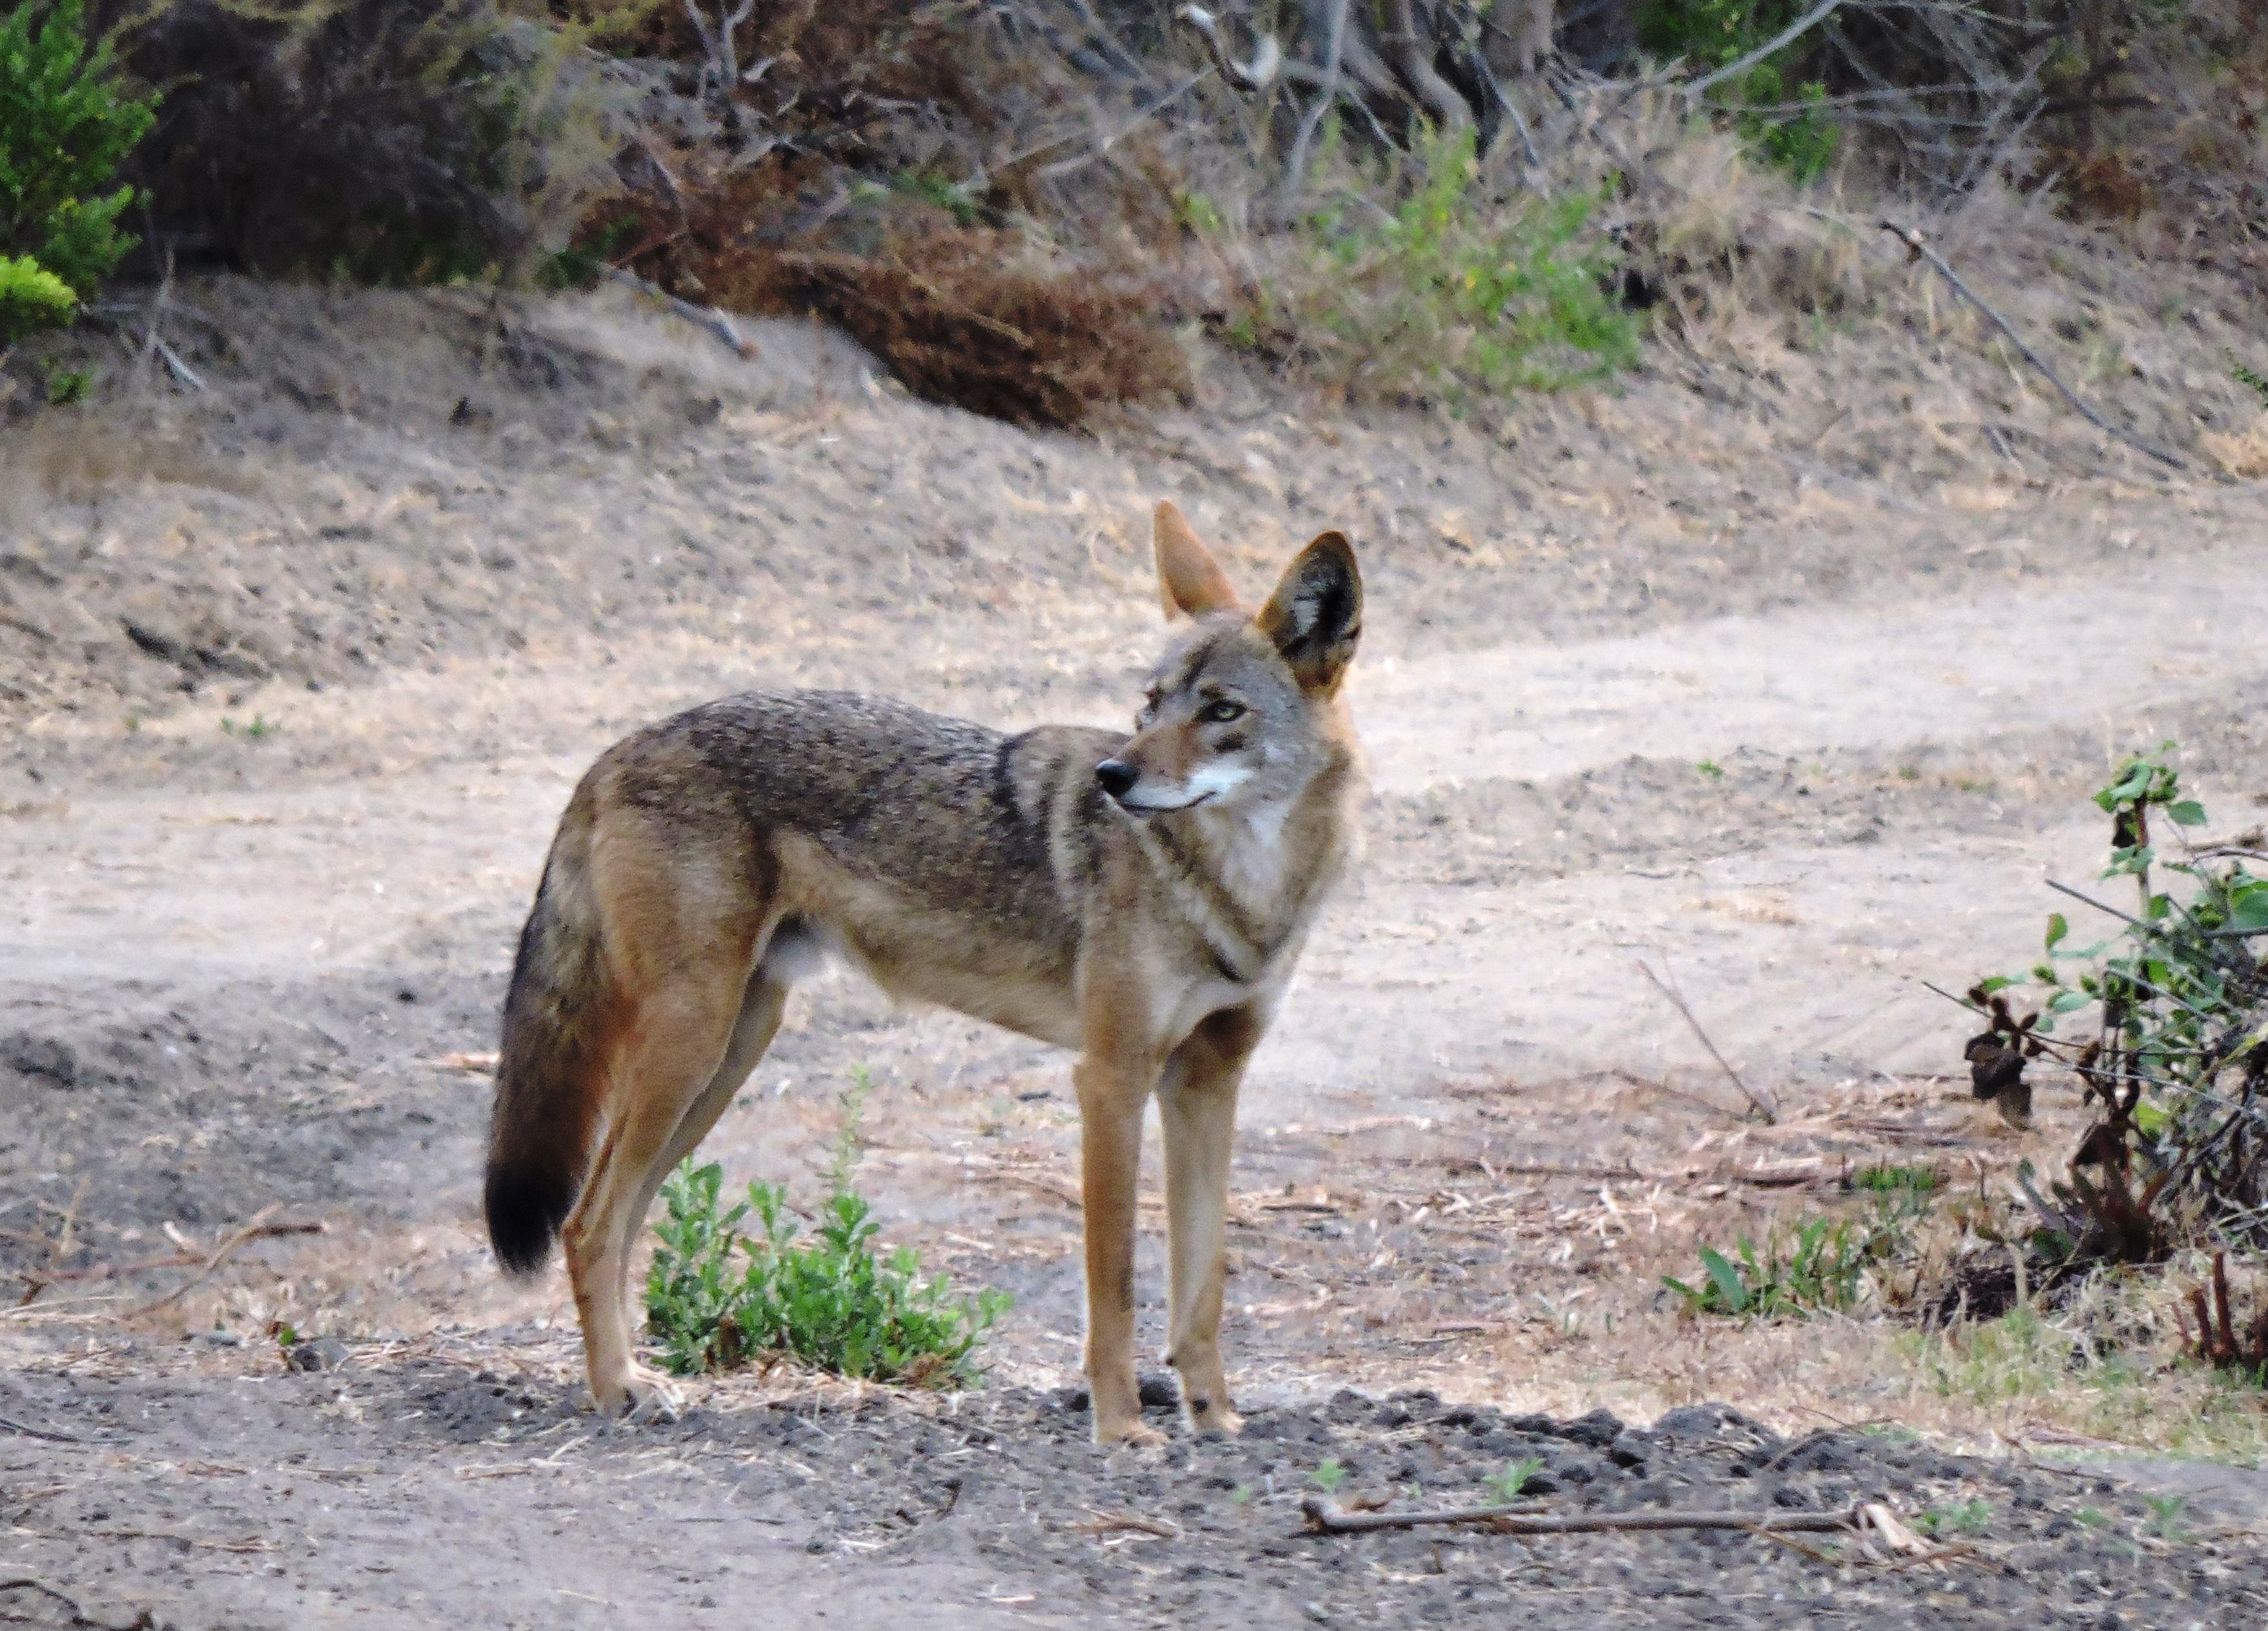 Ranger Todd Nordness captured this coyote in fall 2015 at Buena Vista Creek Ecological Reserve, just south of Highway 78 between College Avenue and El Camino Real. Photos by Todd Wordiness